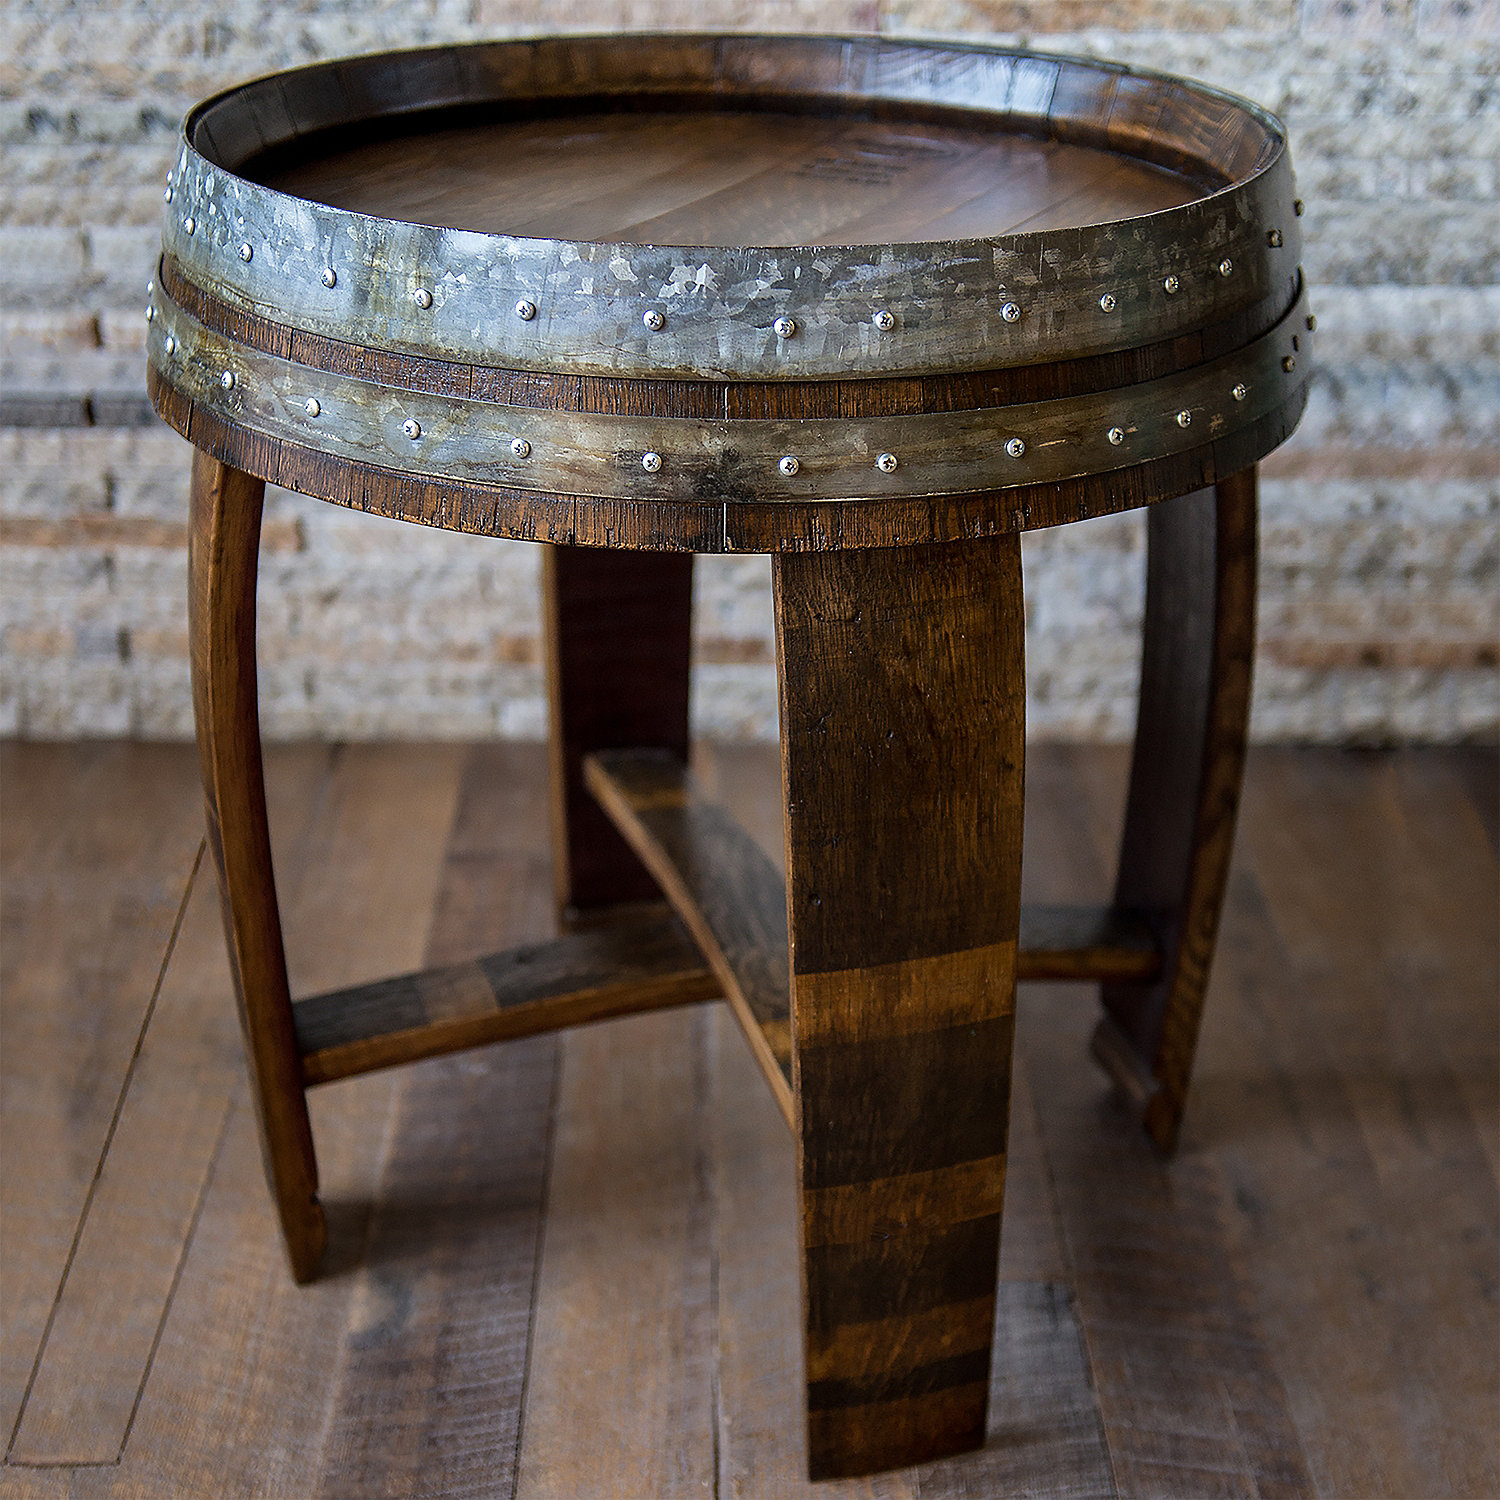 Hako Coffee Table: Recycled Wine Barrel Products